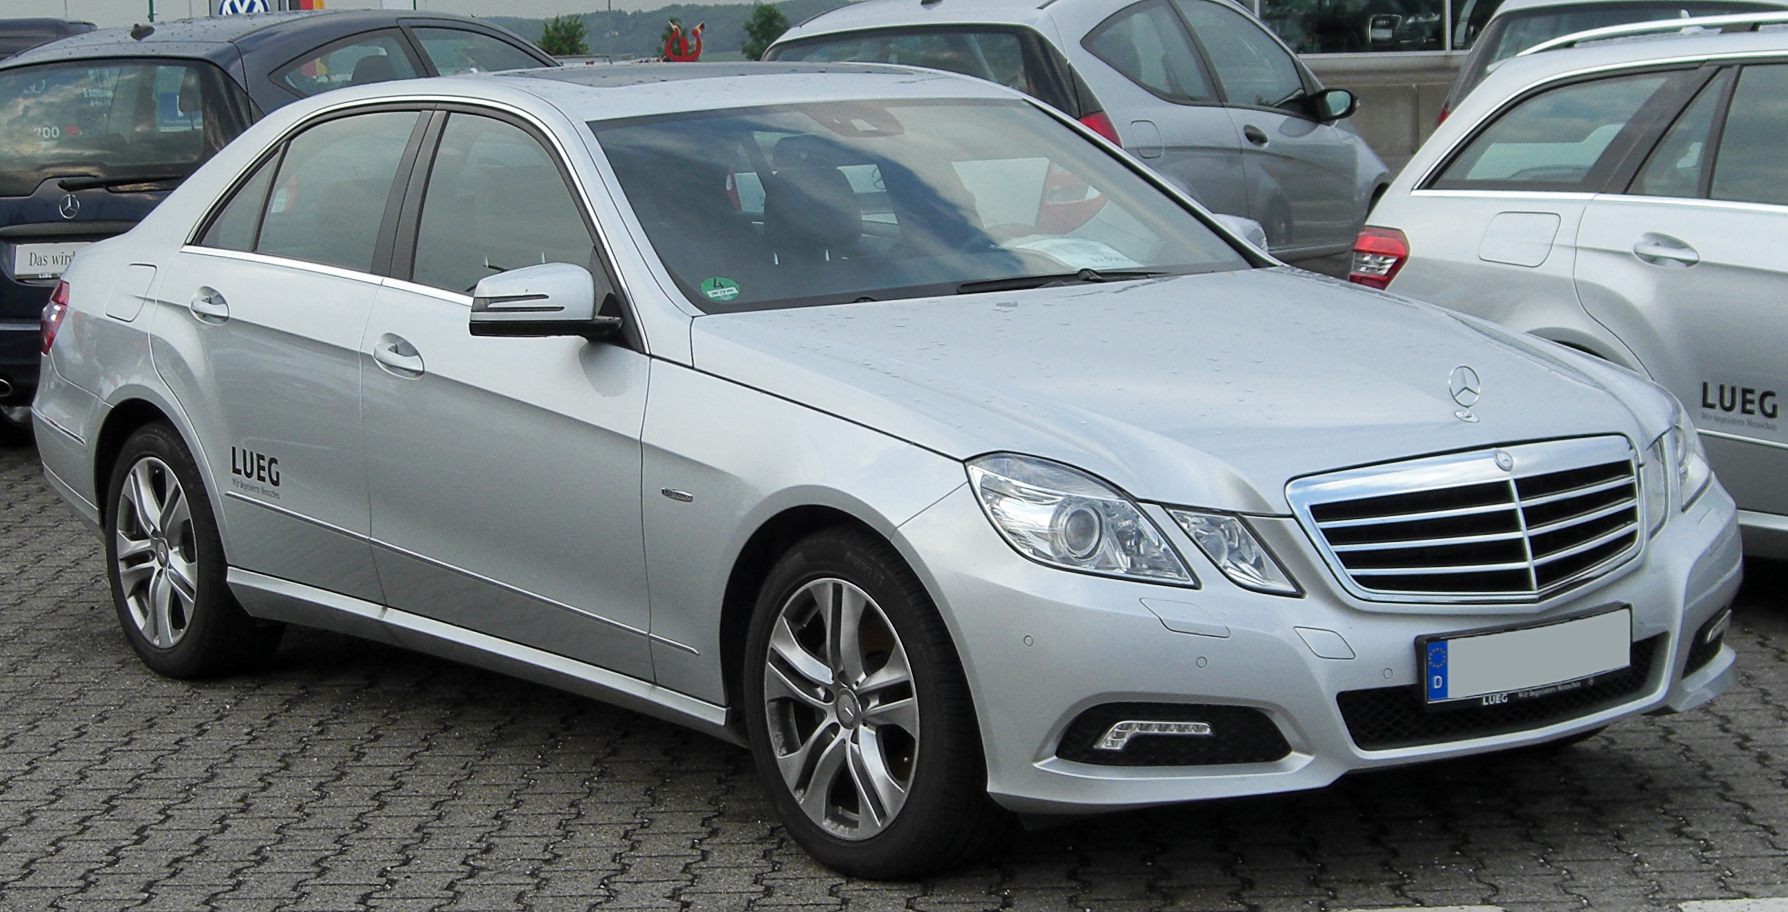 Mercedes-Benz E 250 CDI (W212) Avantgarde sedan (Germany)